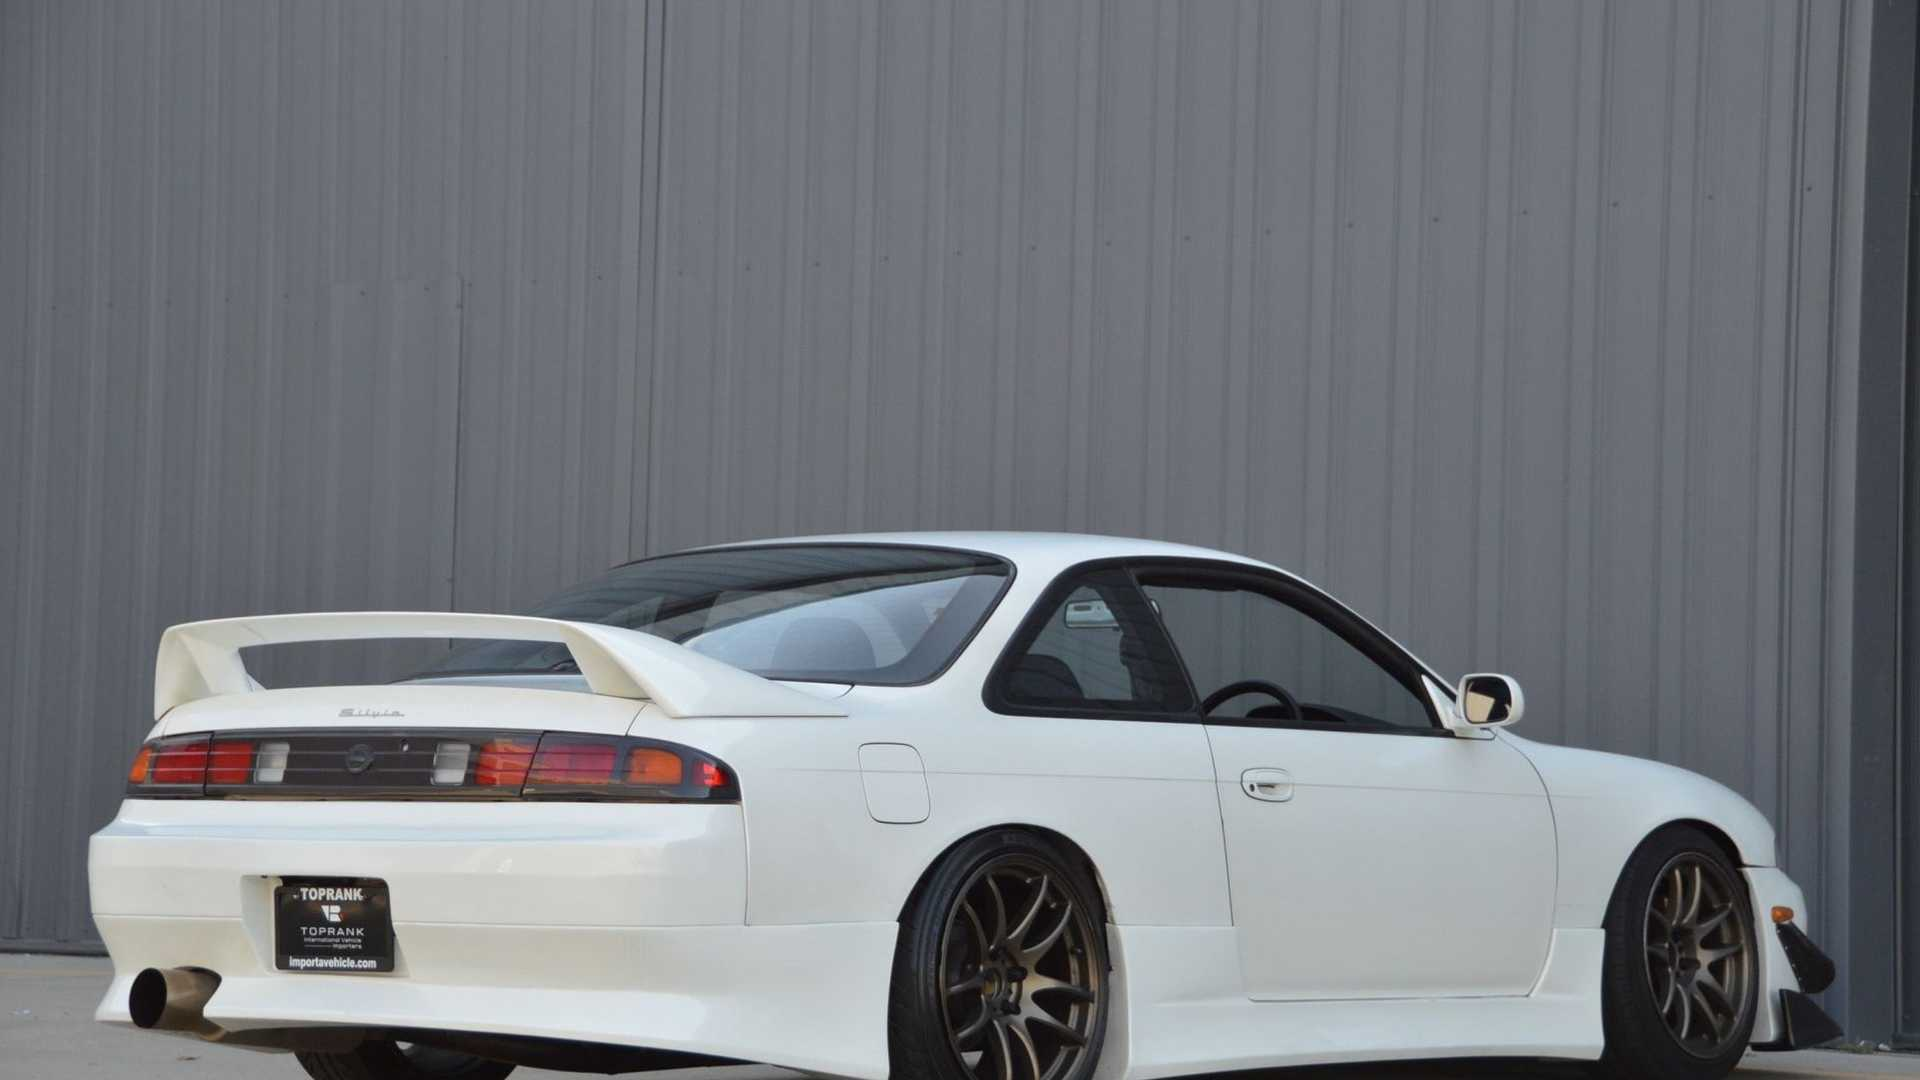 Enjoy Some Import Fun In A Modded 1994 Nissan Silvia S14 | Motorious